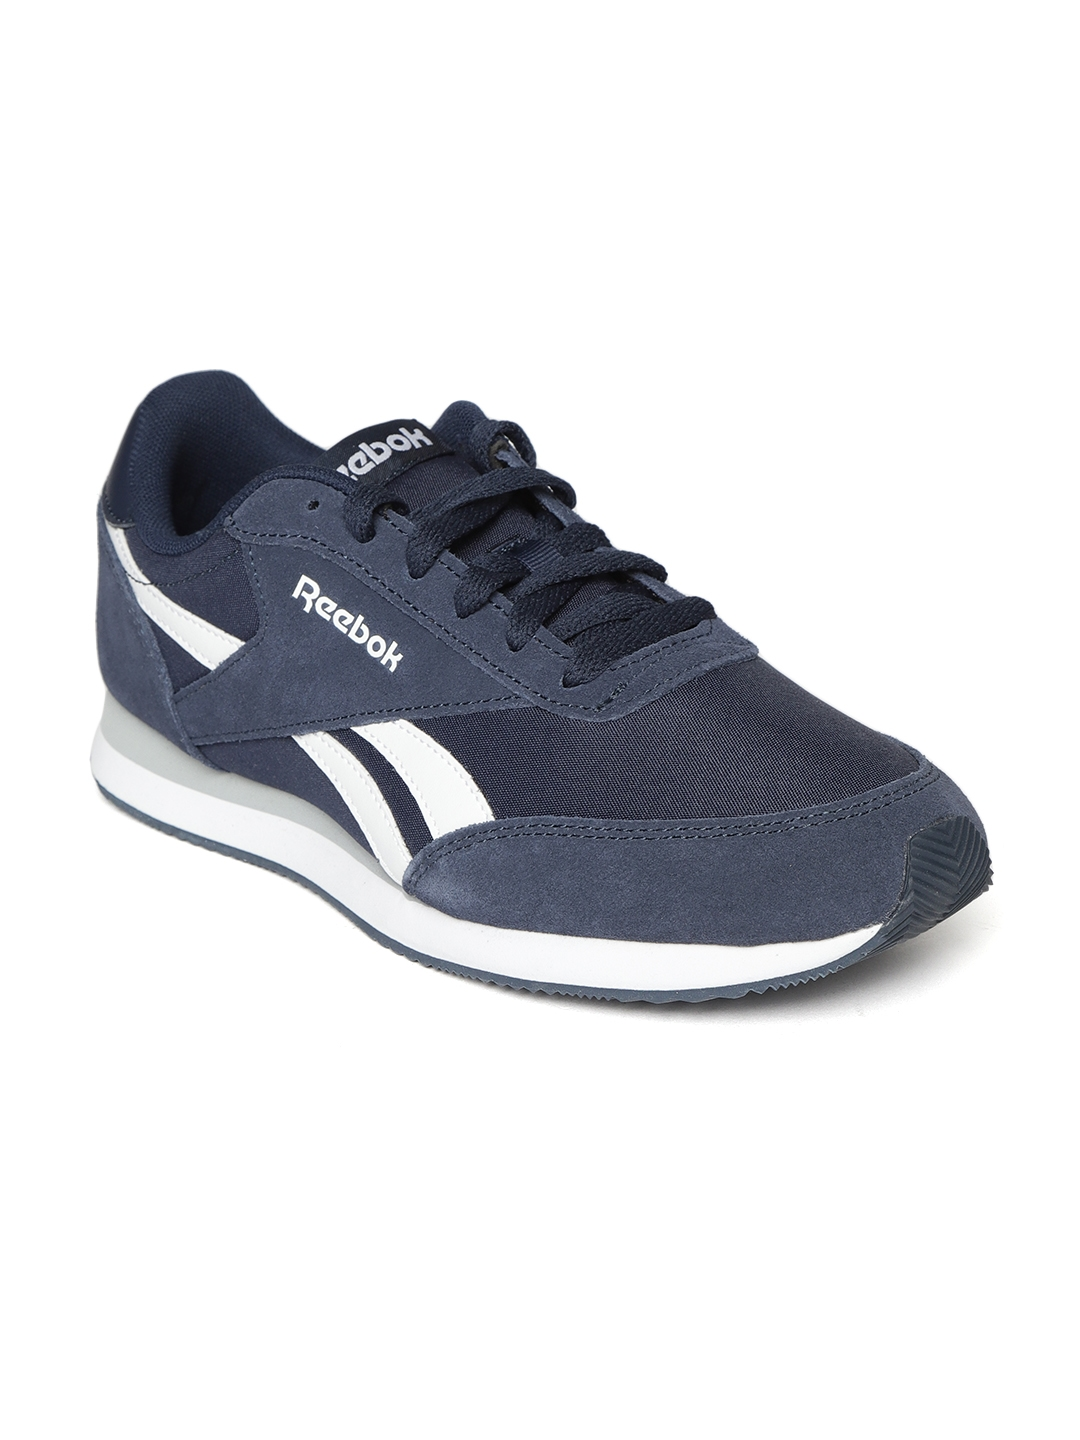 5f1408f84bb1c Buy Reebok Classic Men Navy Royal CL Jogger 2 Sneakers - Casual ...